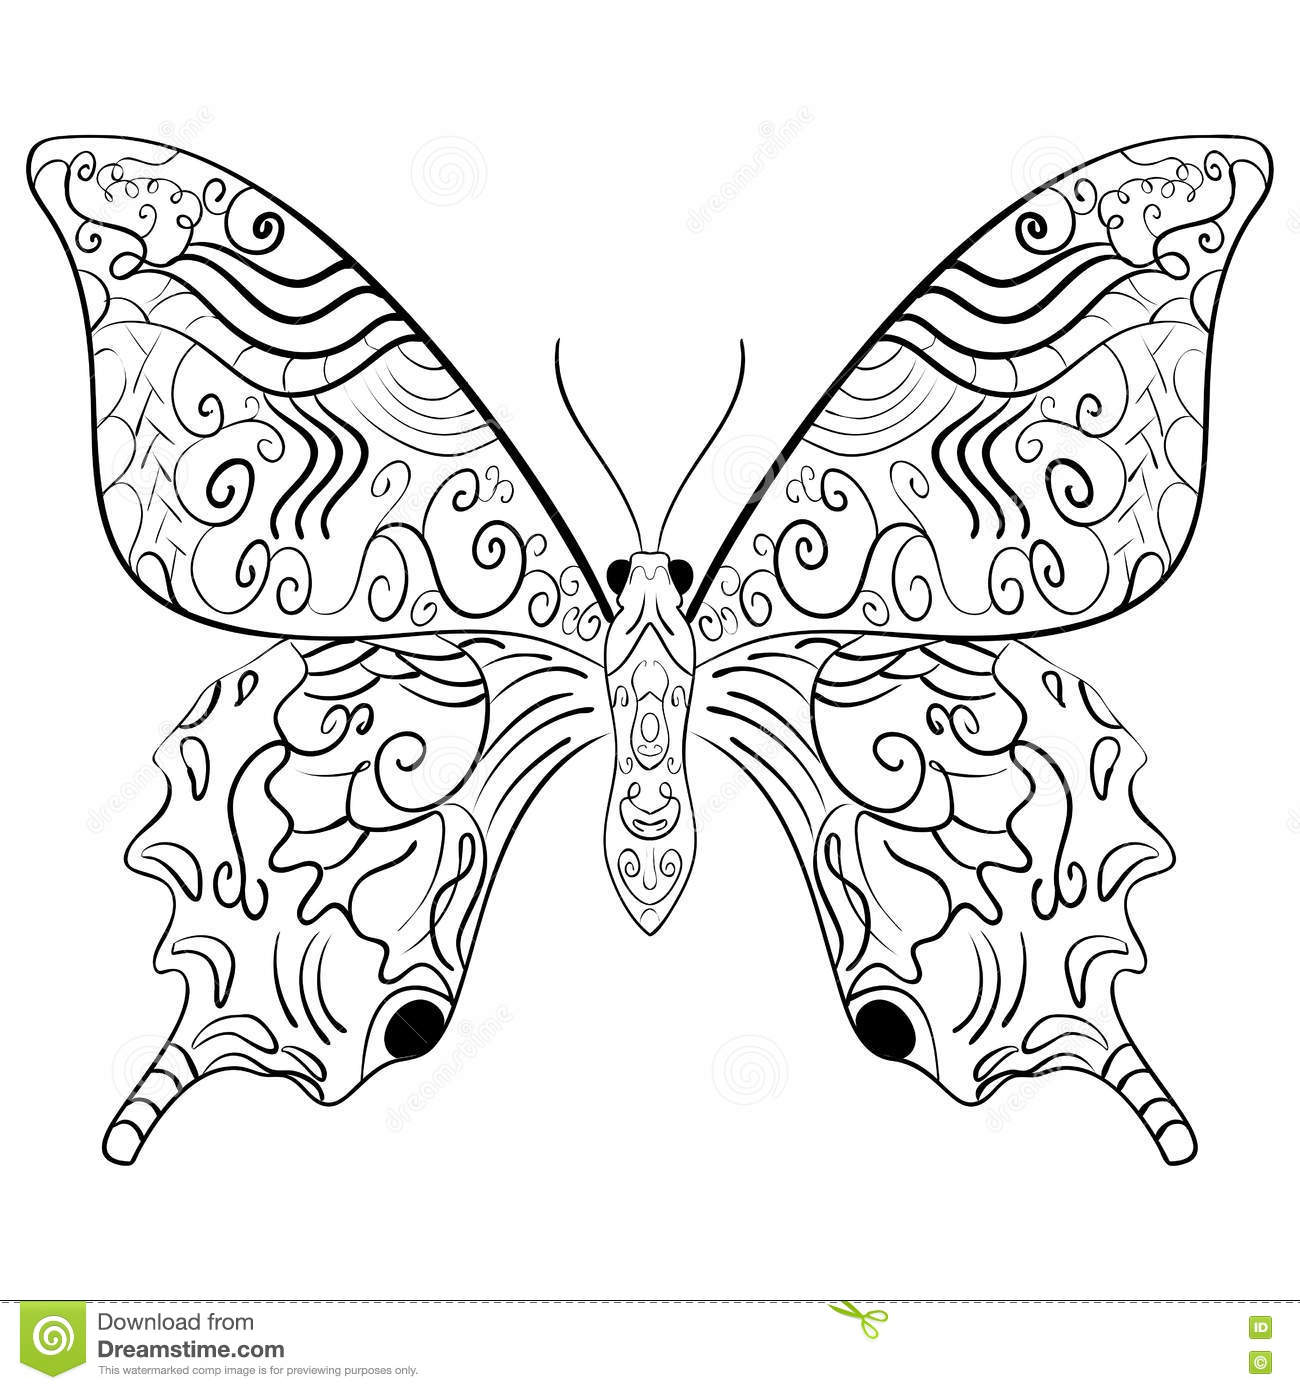 Butterfly Coloring Book For Adults Vector Illustration Anti Stress Adult Zentangle Style Black And White Lines Lace Pattern